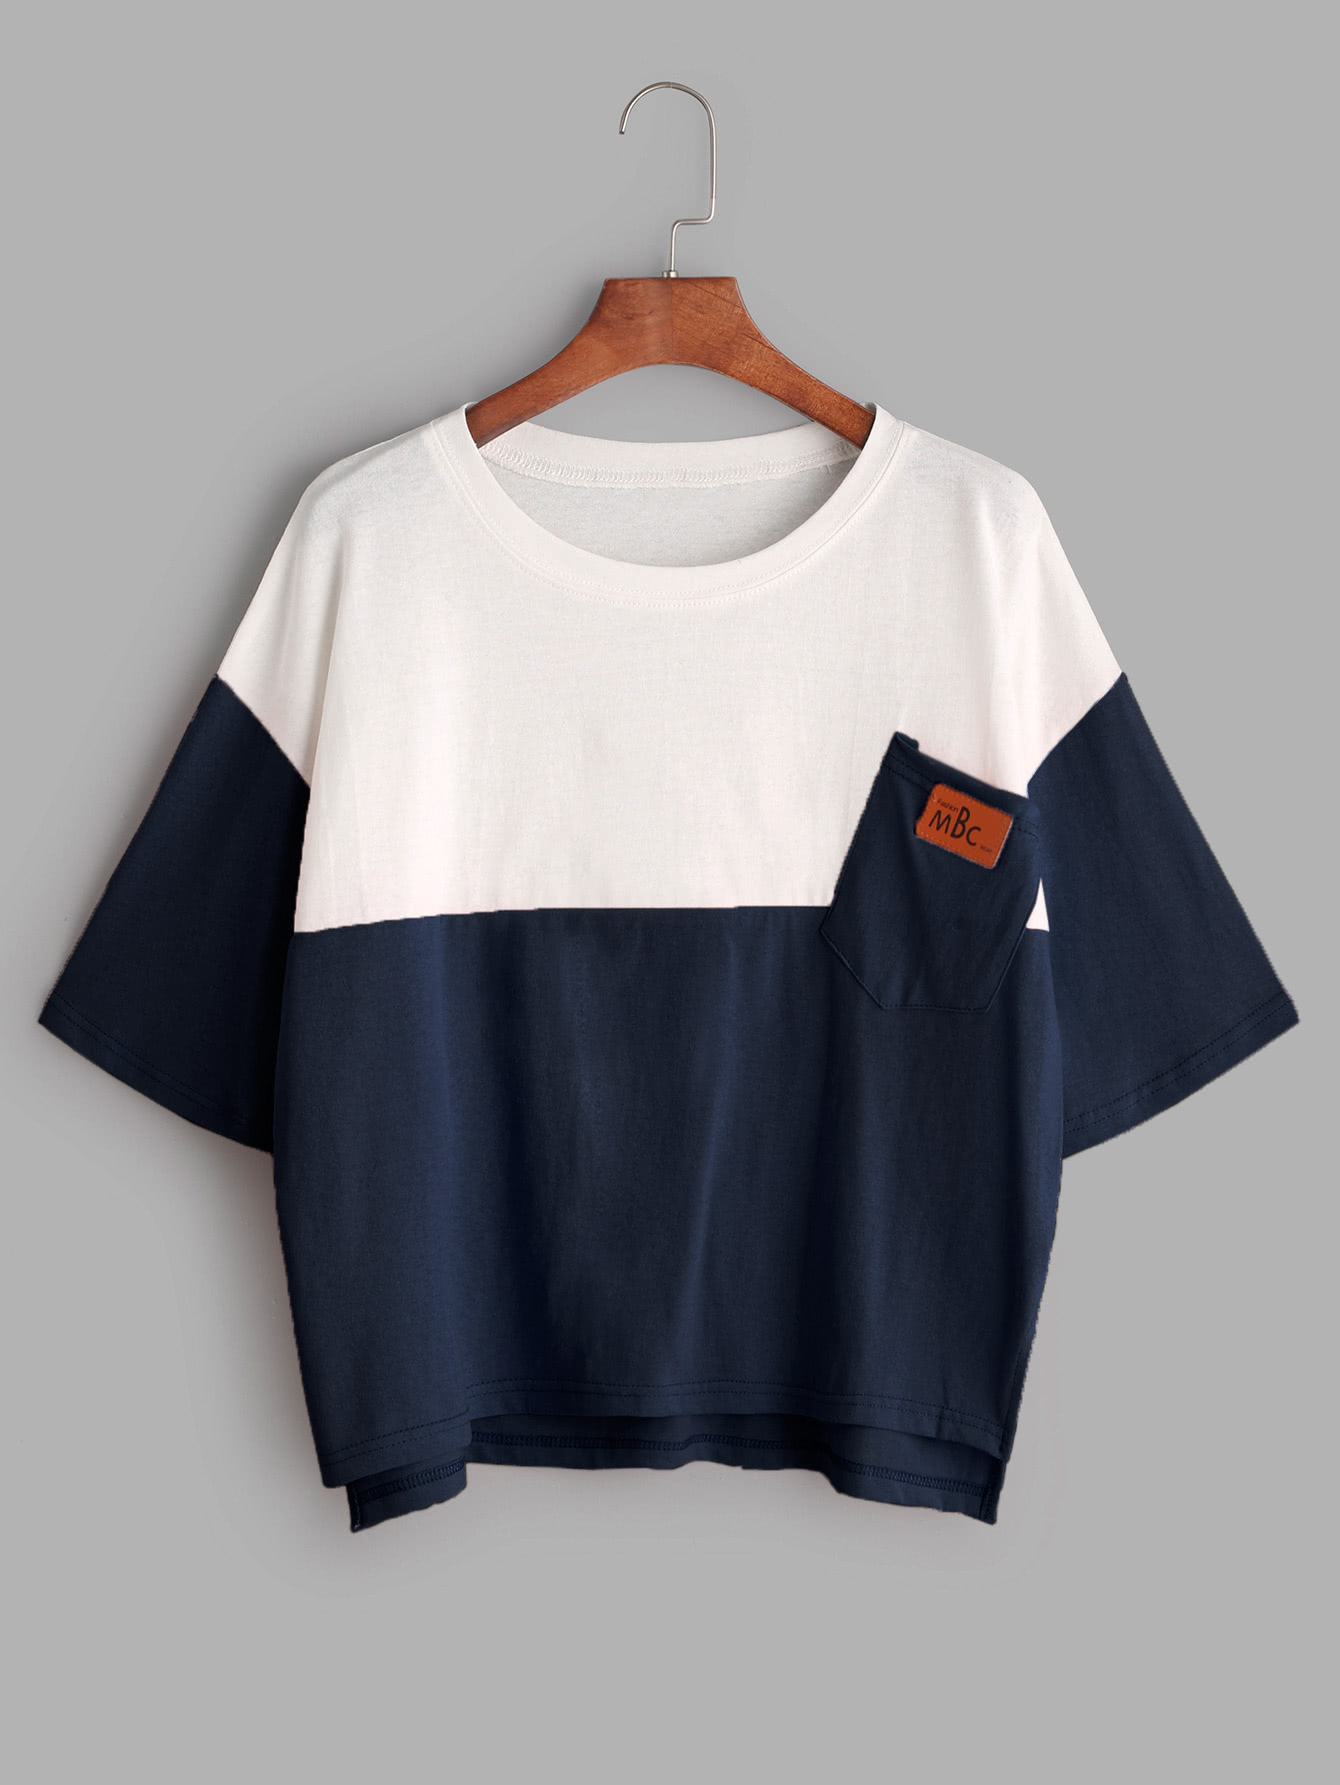 Color Block Dip Hem T-shirt With Chest Pocket ds202 low price pocket oscilloscope with color display